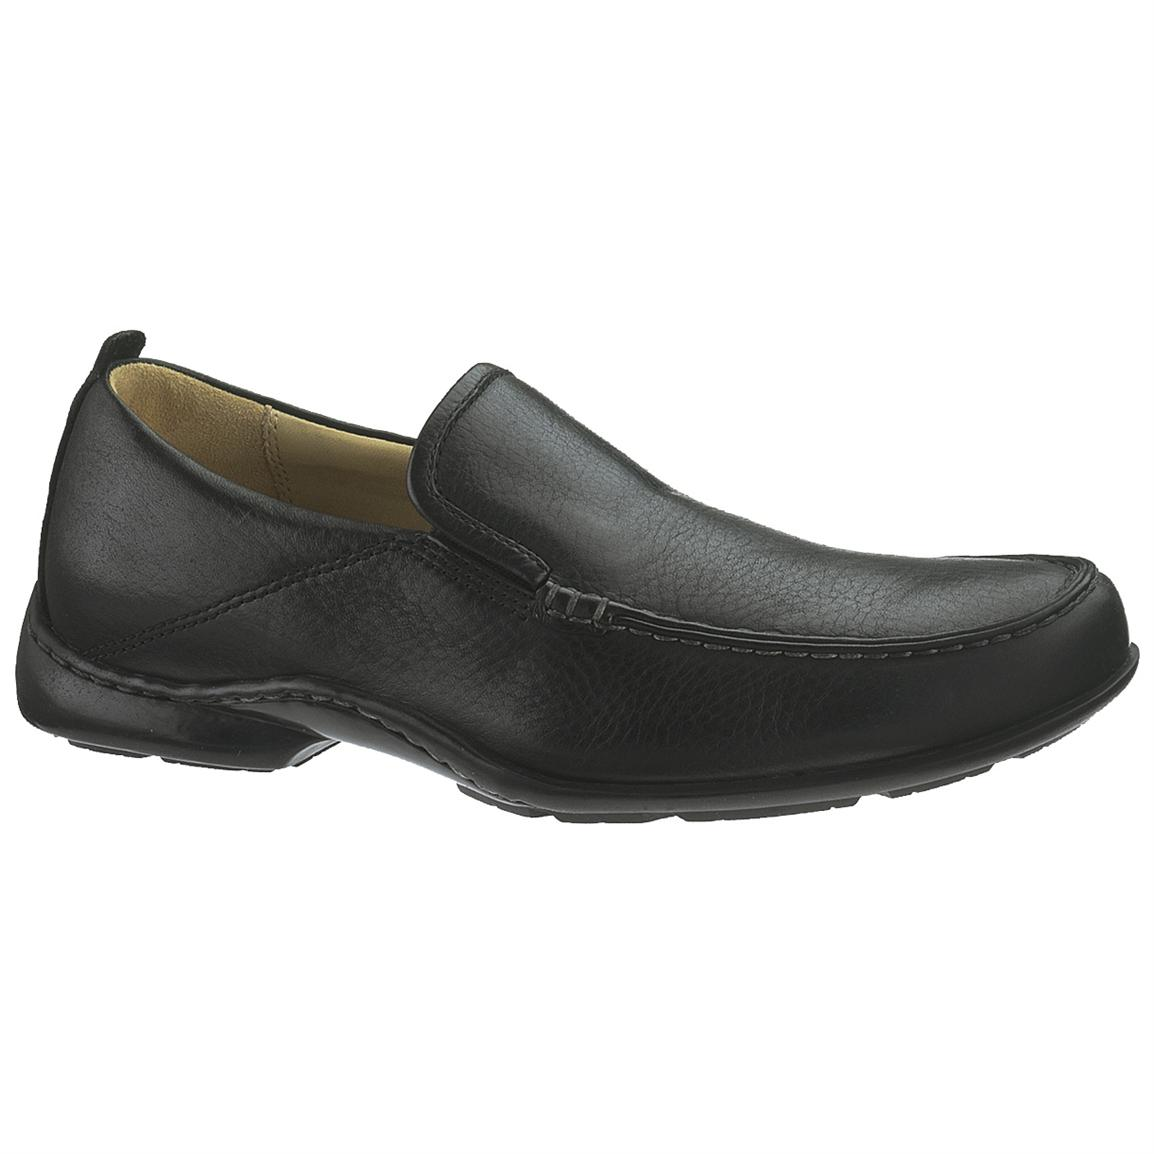 s hush puppies 174 gt shoes 283721 casual shoes at